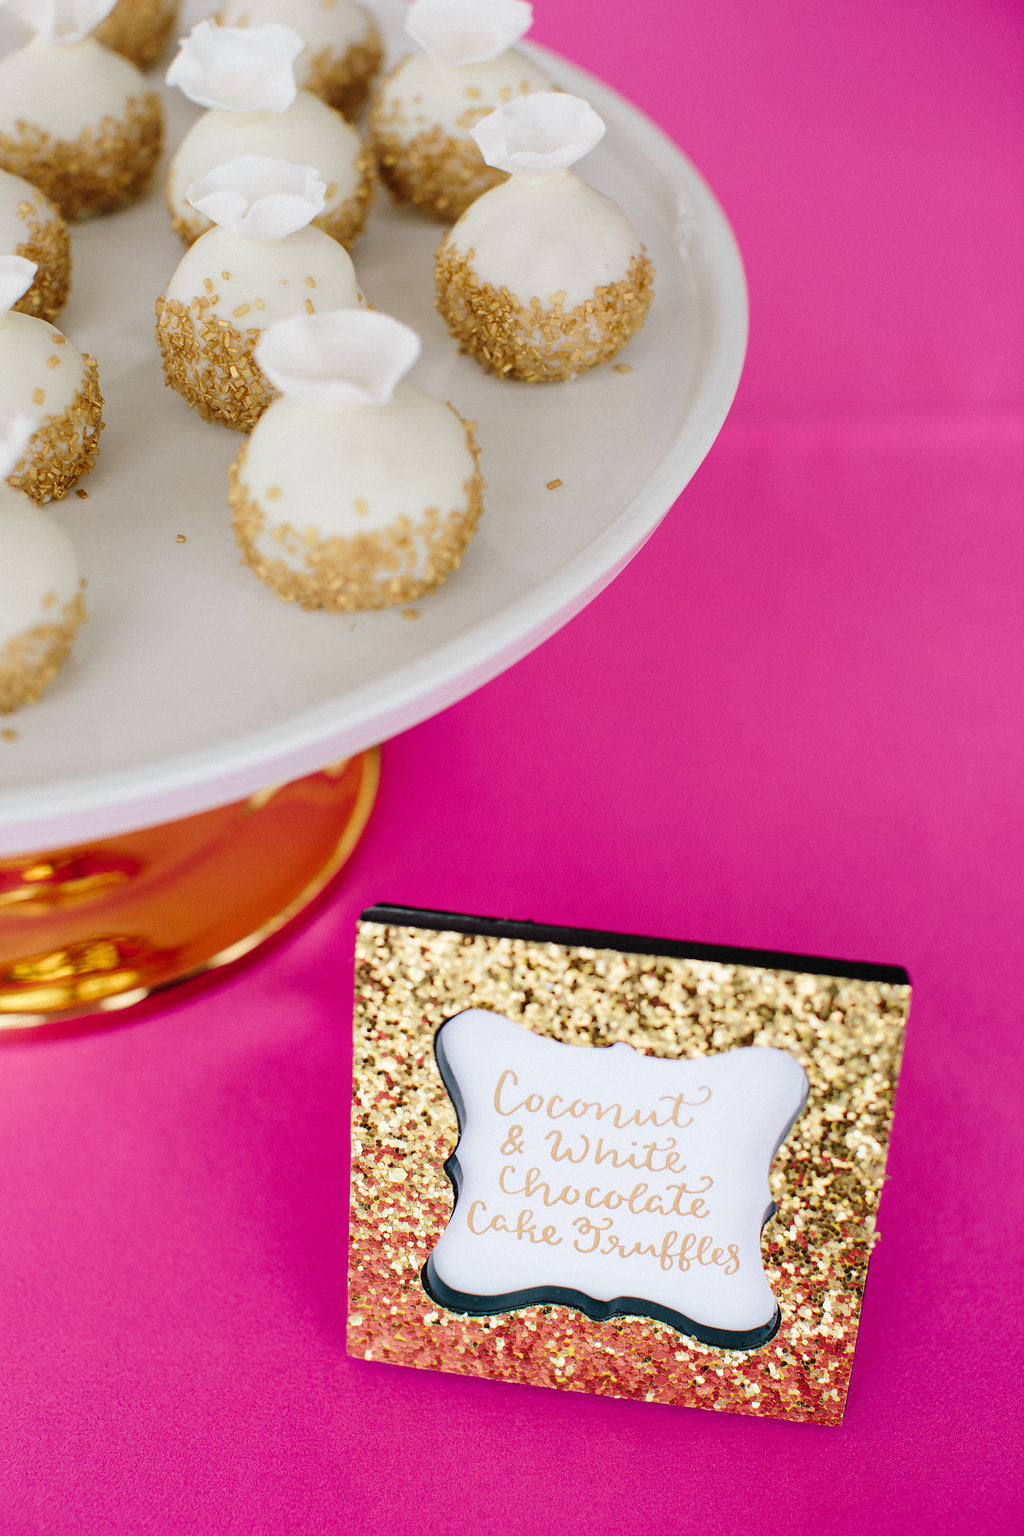 Gem Inspired Bridesmaid Luncheon Coconut and White Chocolate Cake Truffles - Lauren Carnes Photography